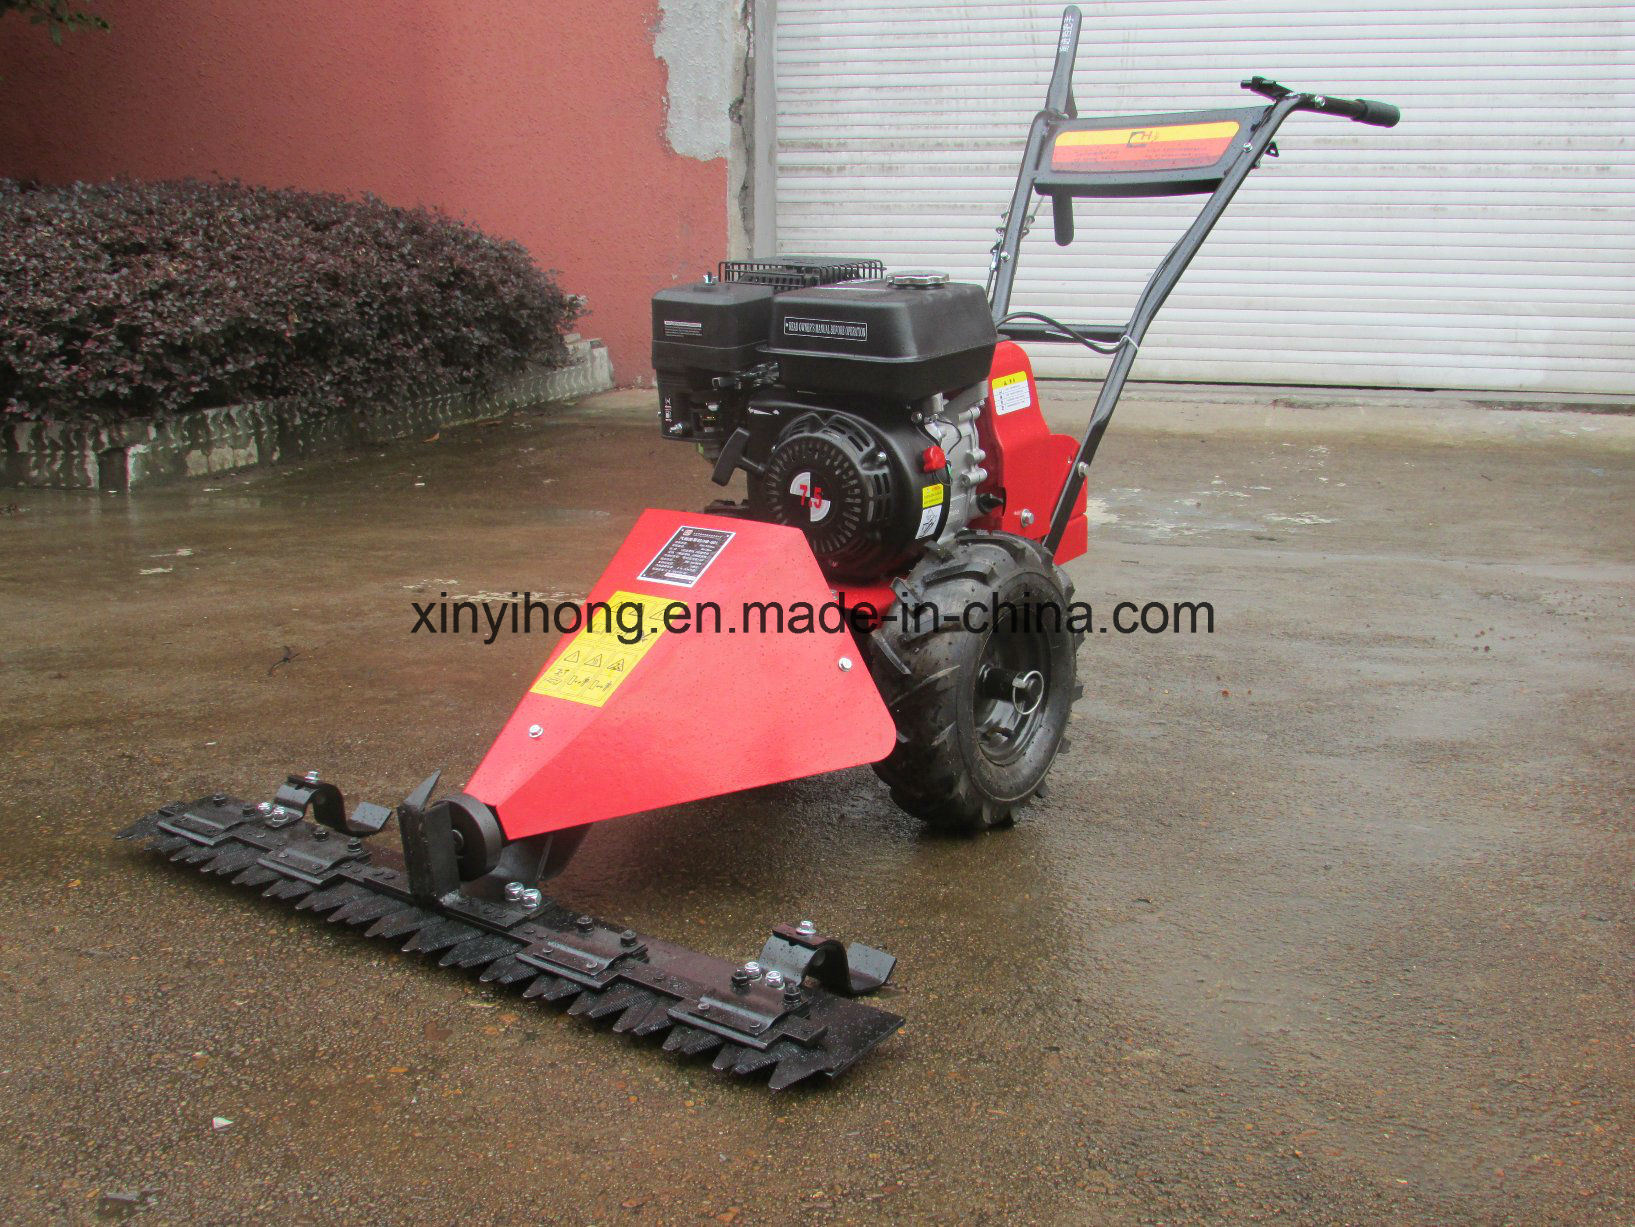 Gasoline 6.5HP Scythe Mower with 800mm Cutter